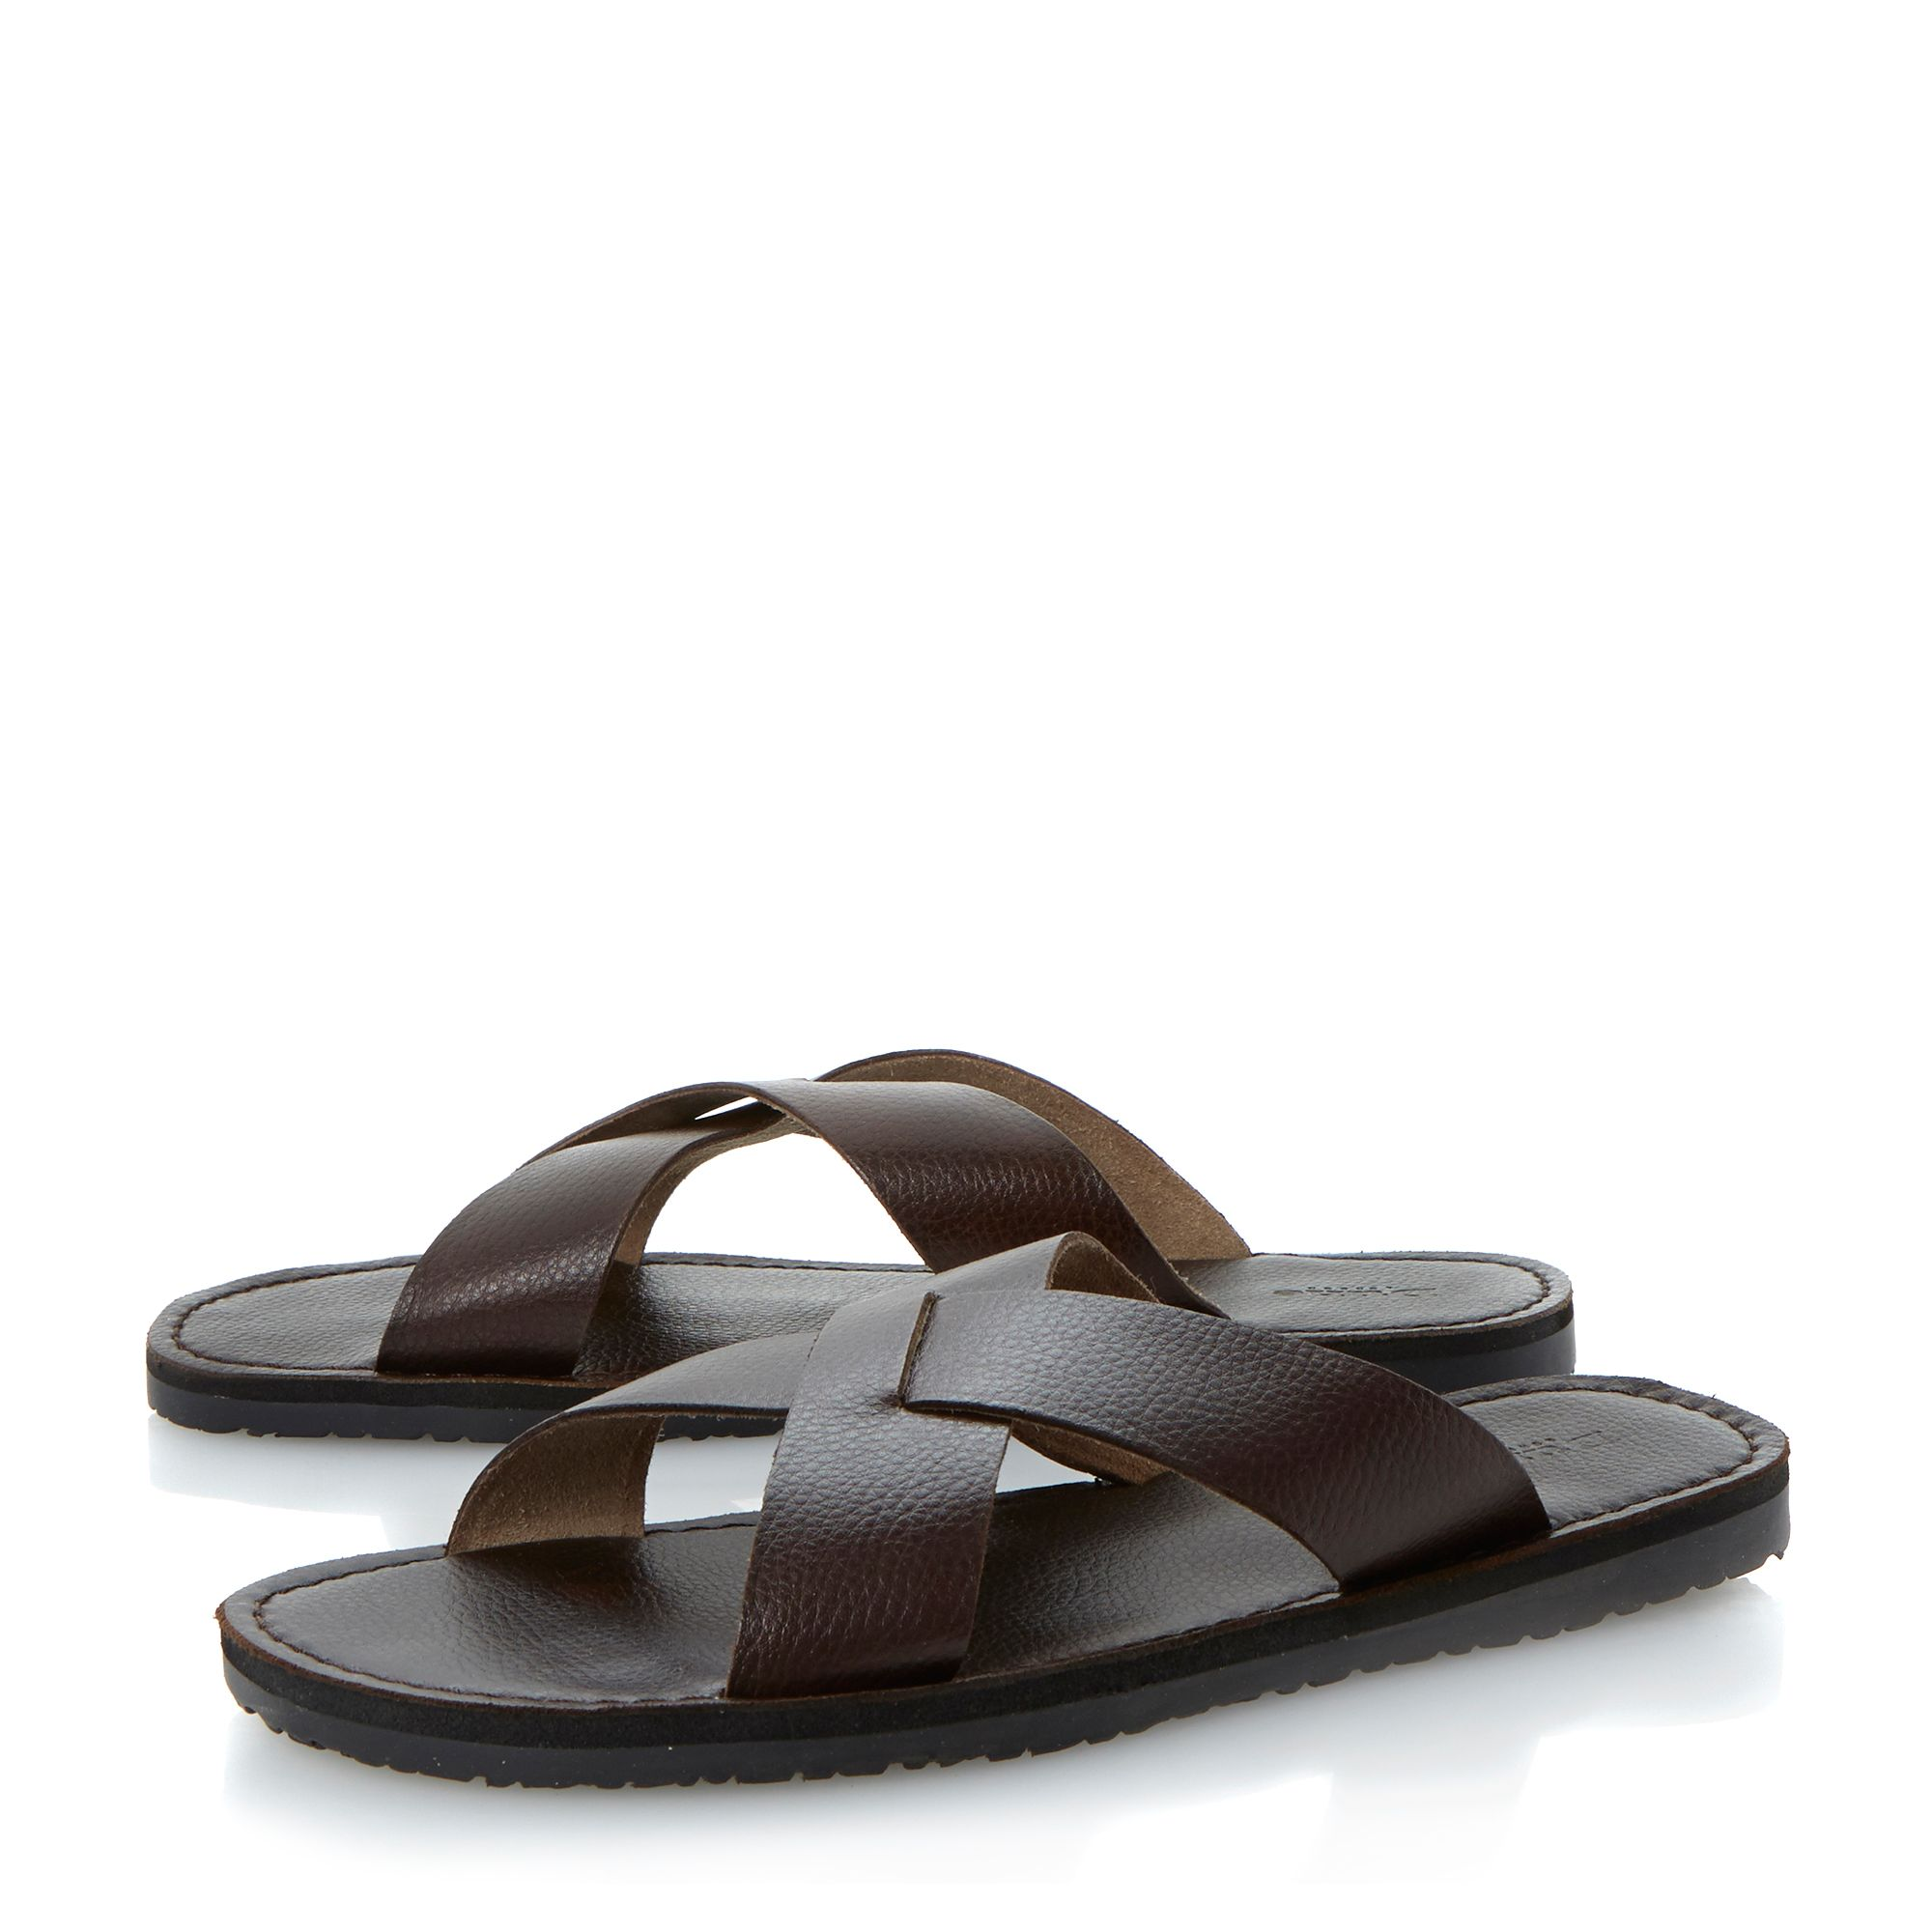 Indian summer leather crossover sandals